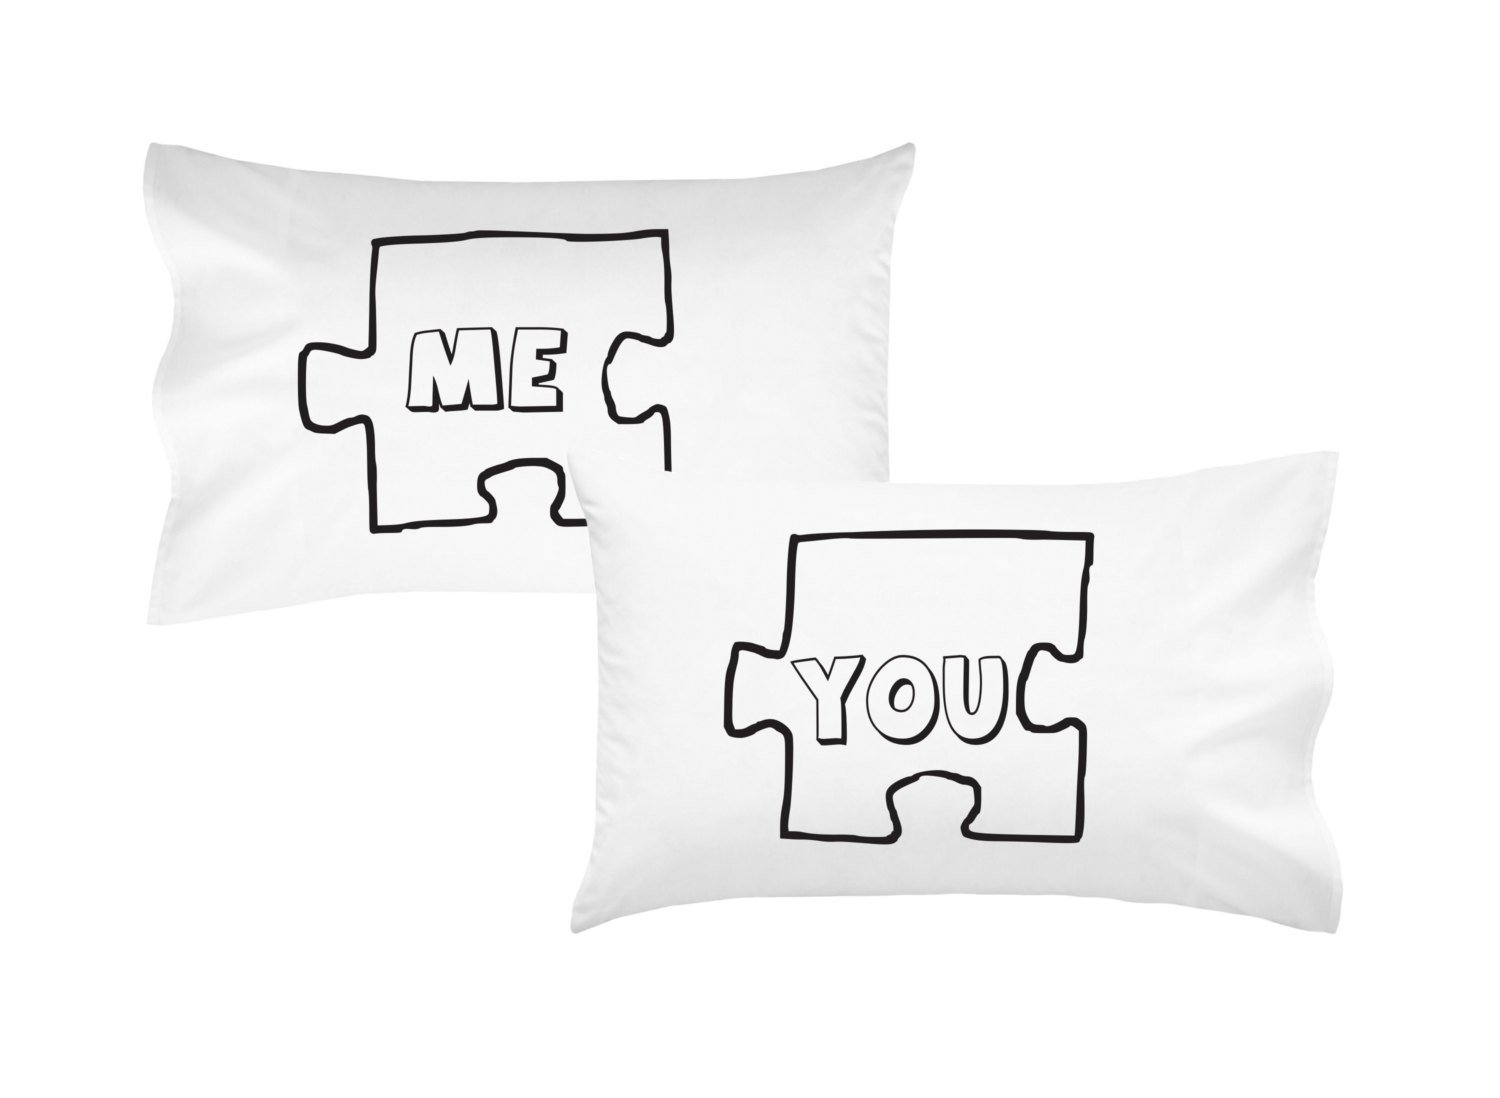 Oh, Susannah Puzzle Piece Couples Pillowcases Ideal Long Distance Relationship Gift Boyfriend Girlfriend Present His & Hers Wedding Anniversary Gift (2 Standard/Queen Pillowcases)